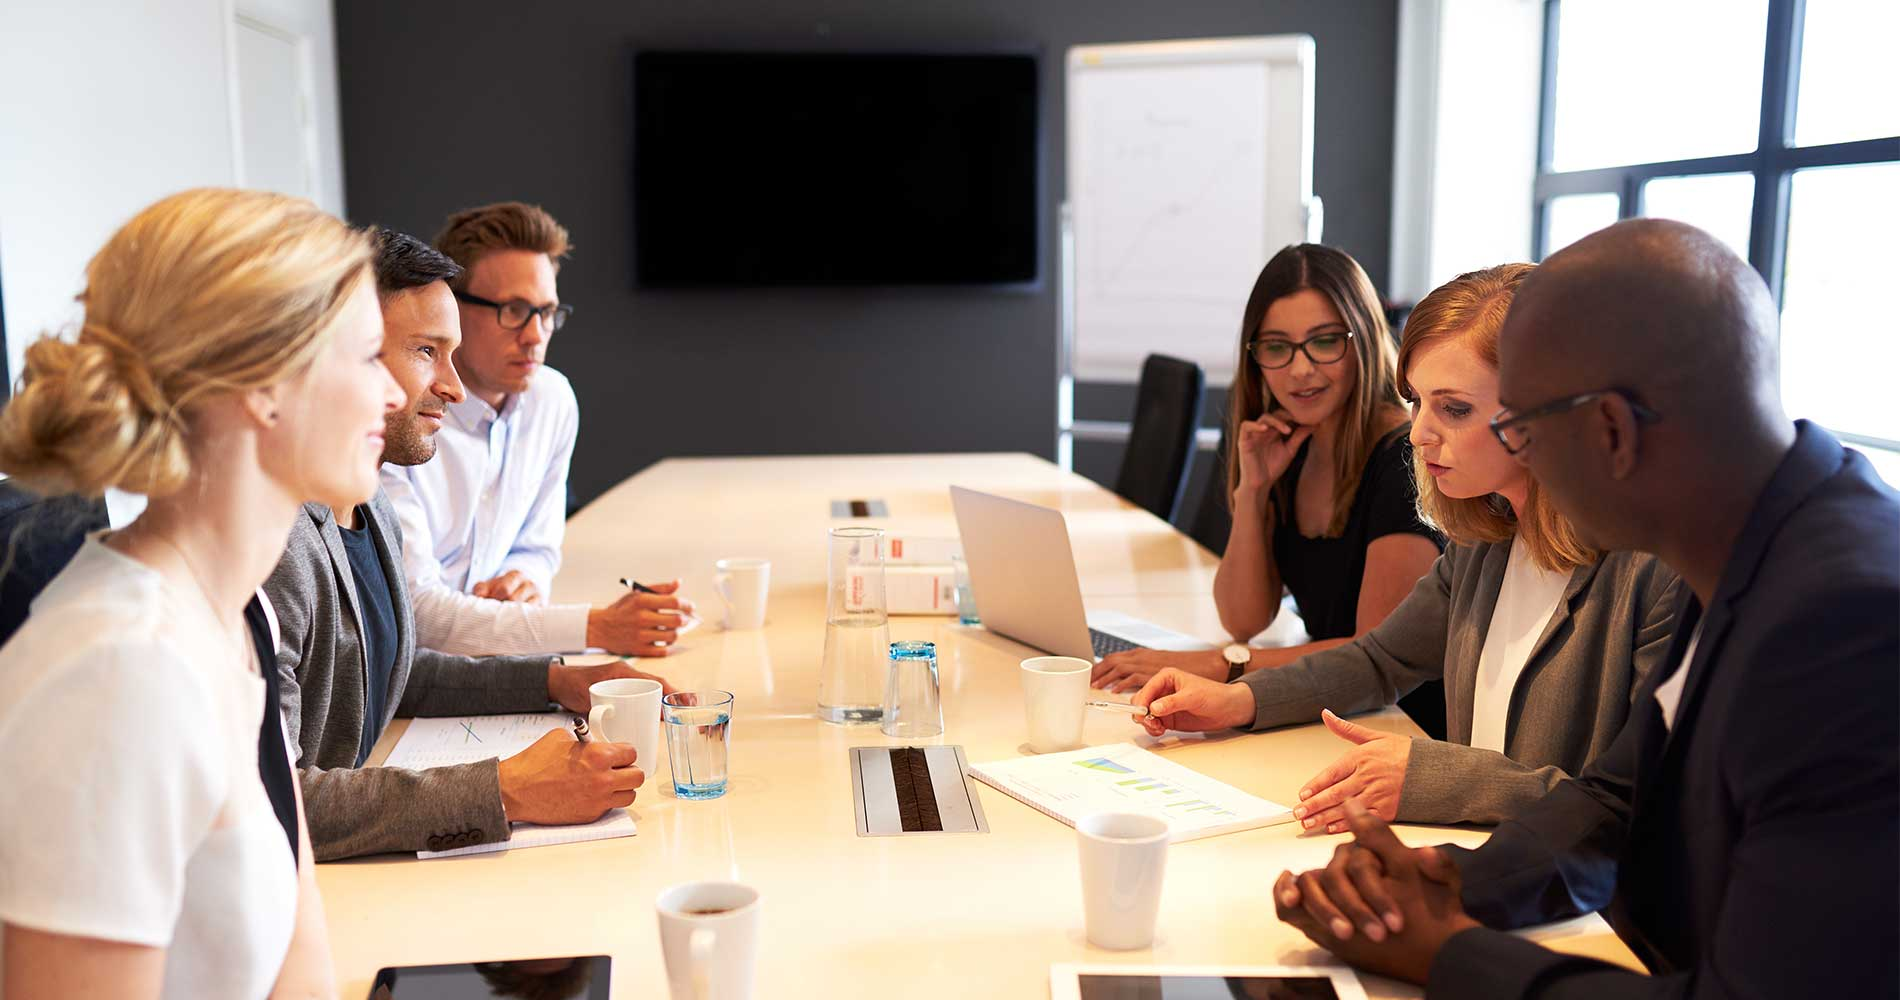 Learn the Meeting Room Technology Essentials